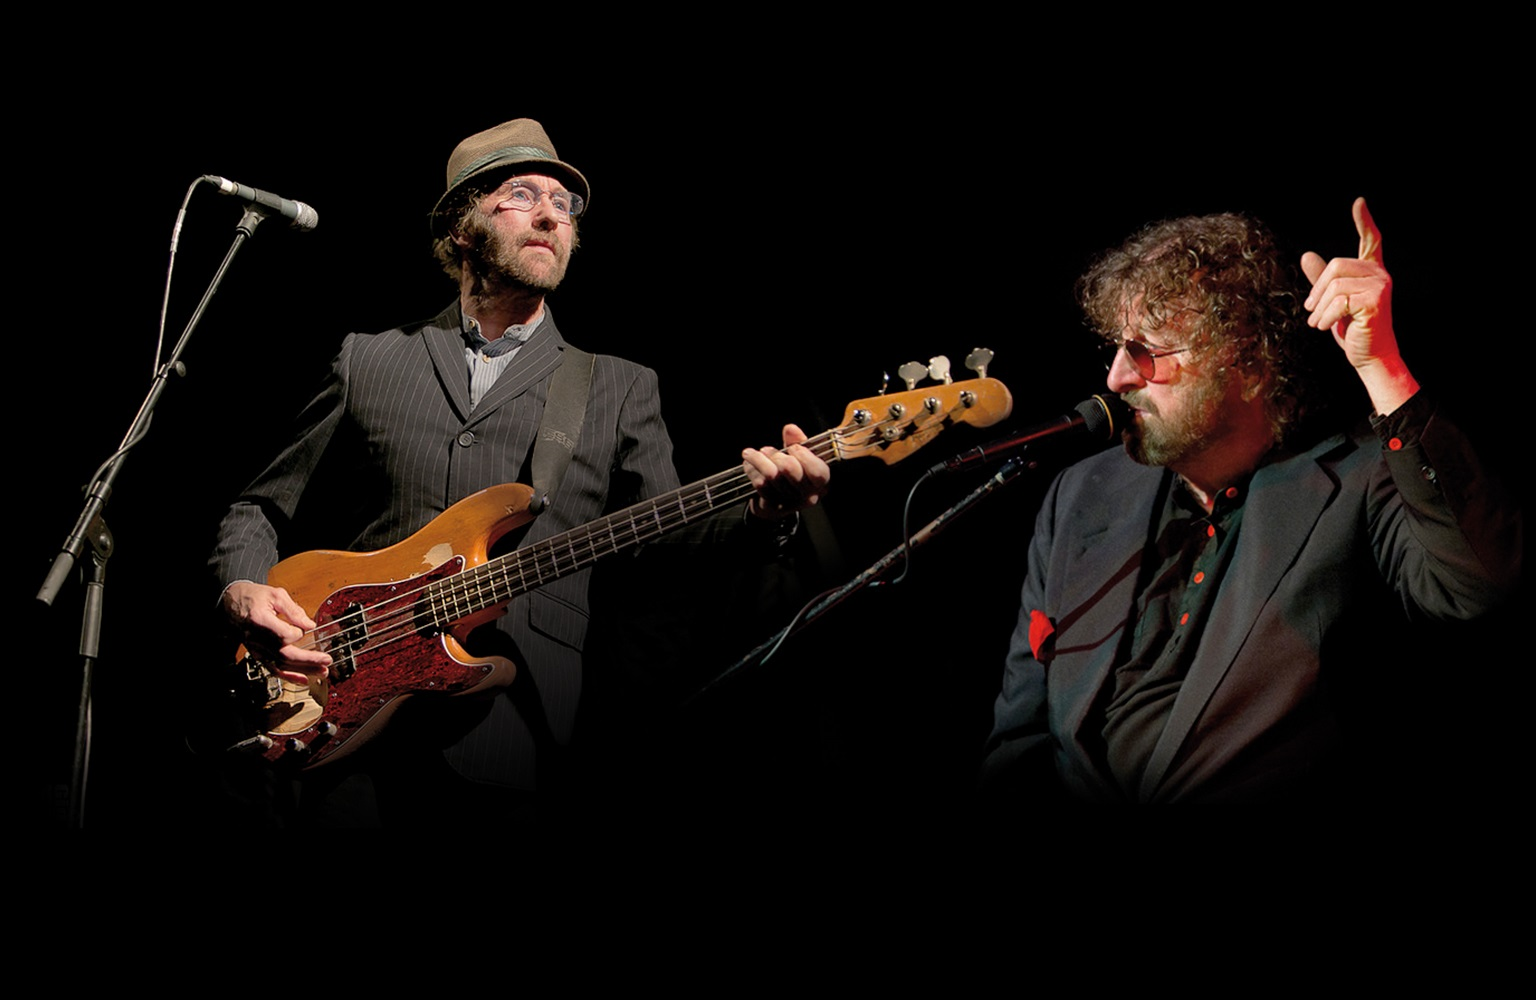 Profile on Chas & Dave: Find out Chas's favourite song, their idea of a good old knees up and recording adverts